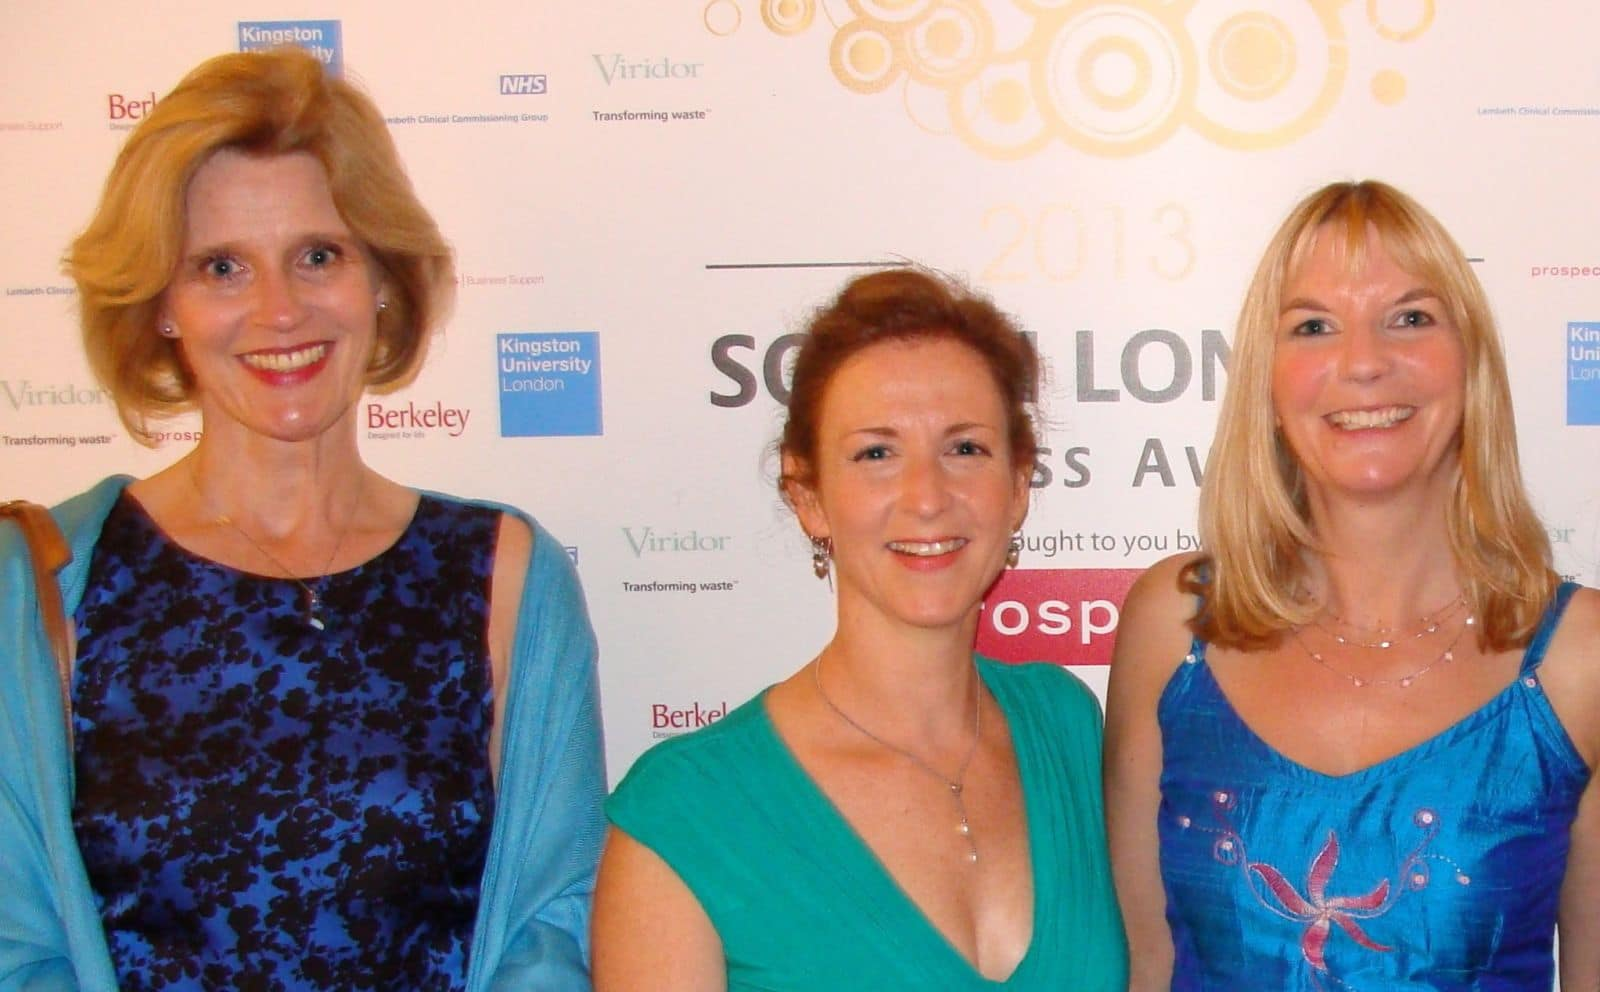 Special commendation for Best Customer Service at South London Business Awards 2014